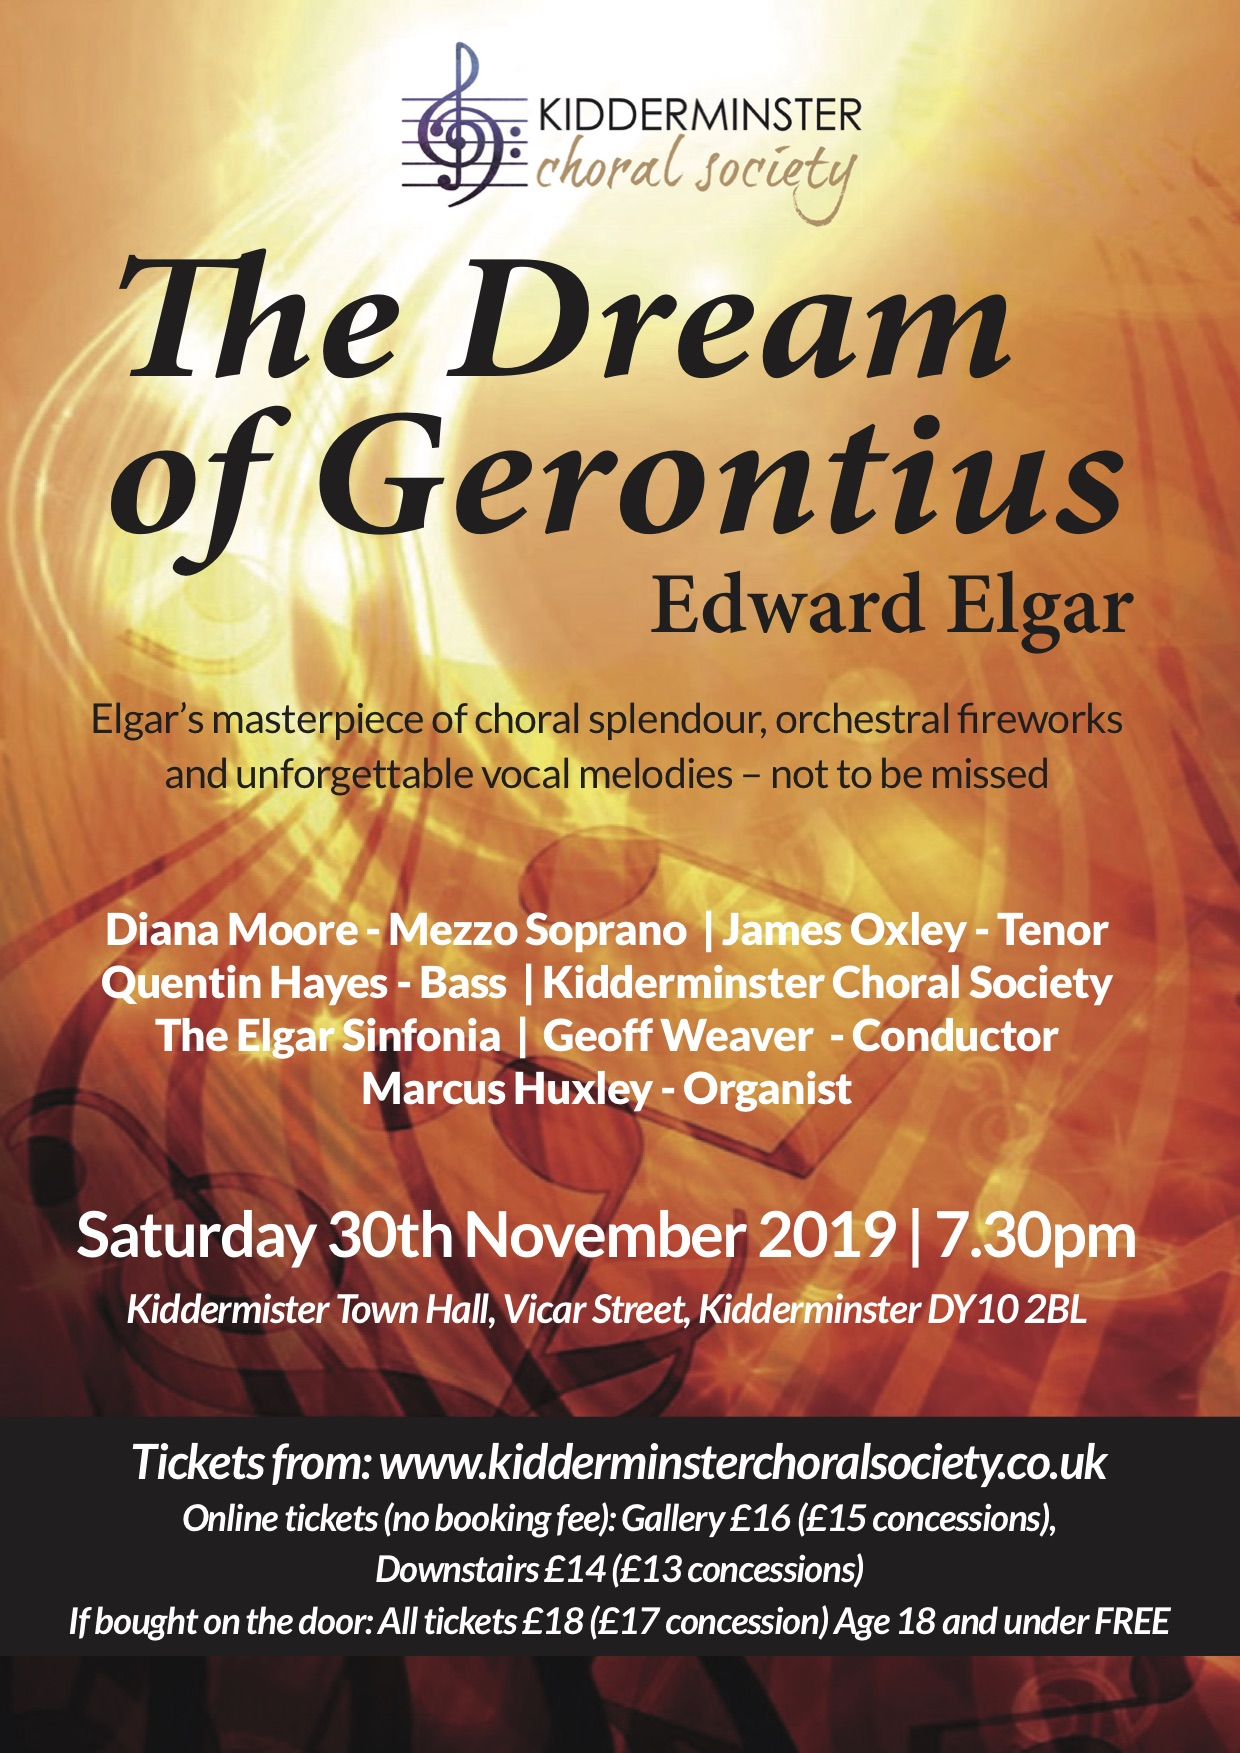 Kidderminster Choral Concert The Dream of Gerontius